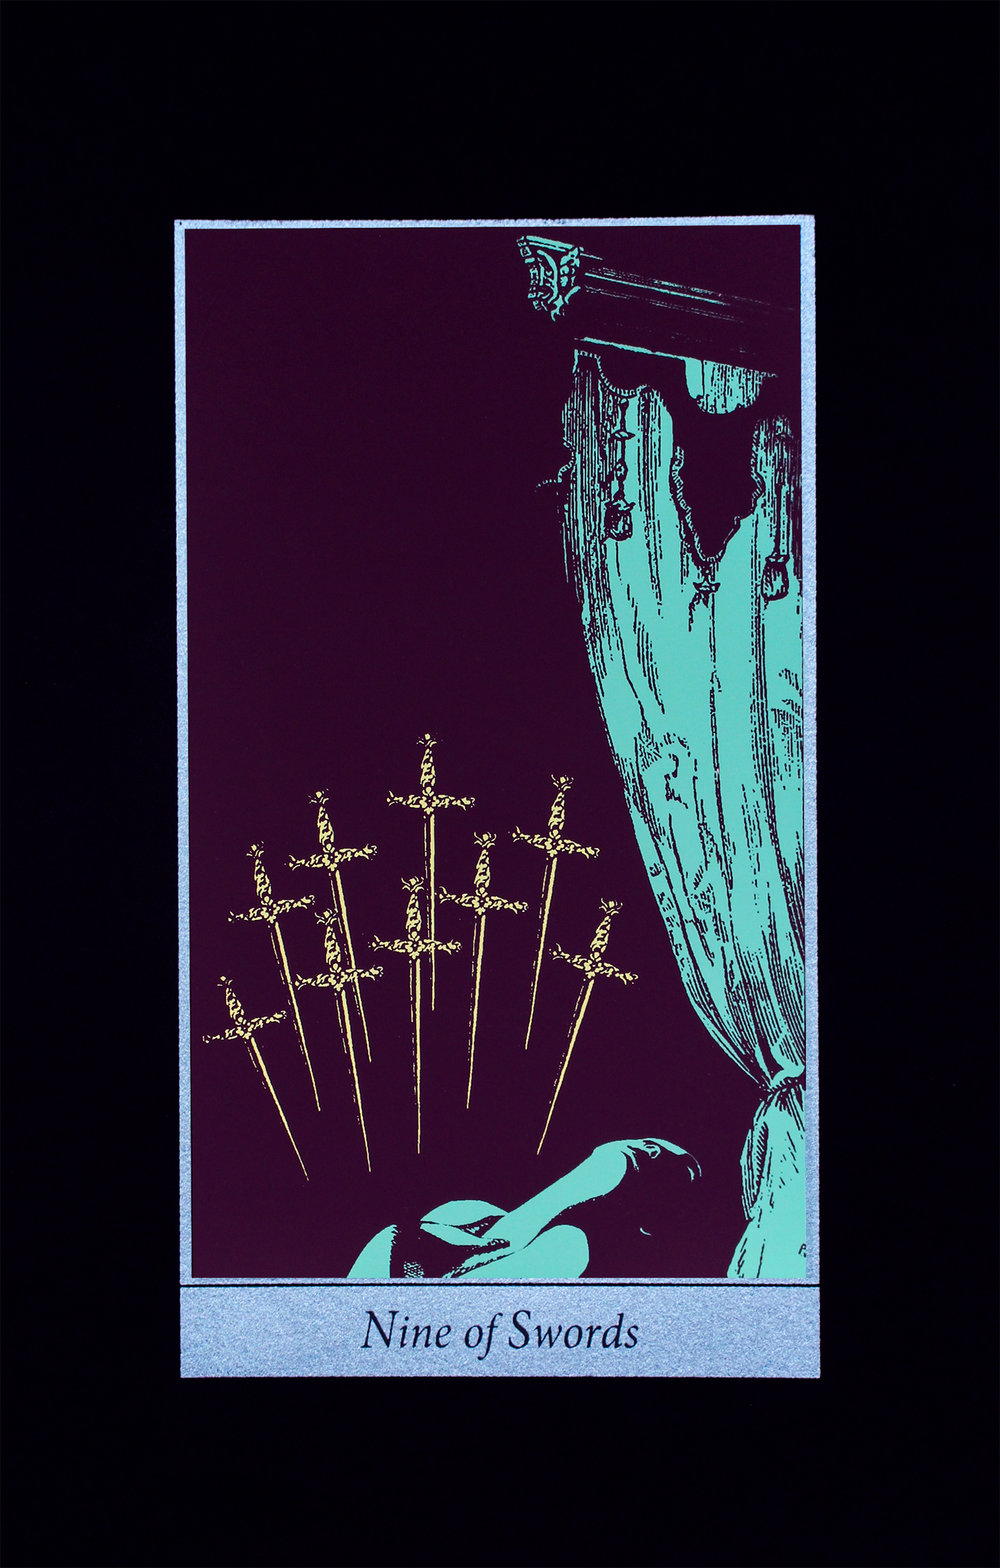 Nine of Swords, 2018, screenprint on black Strathmore paper, 8x12""